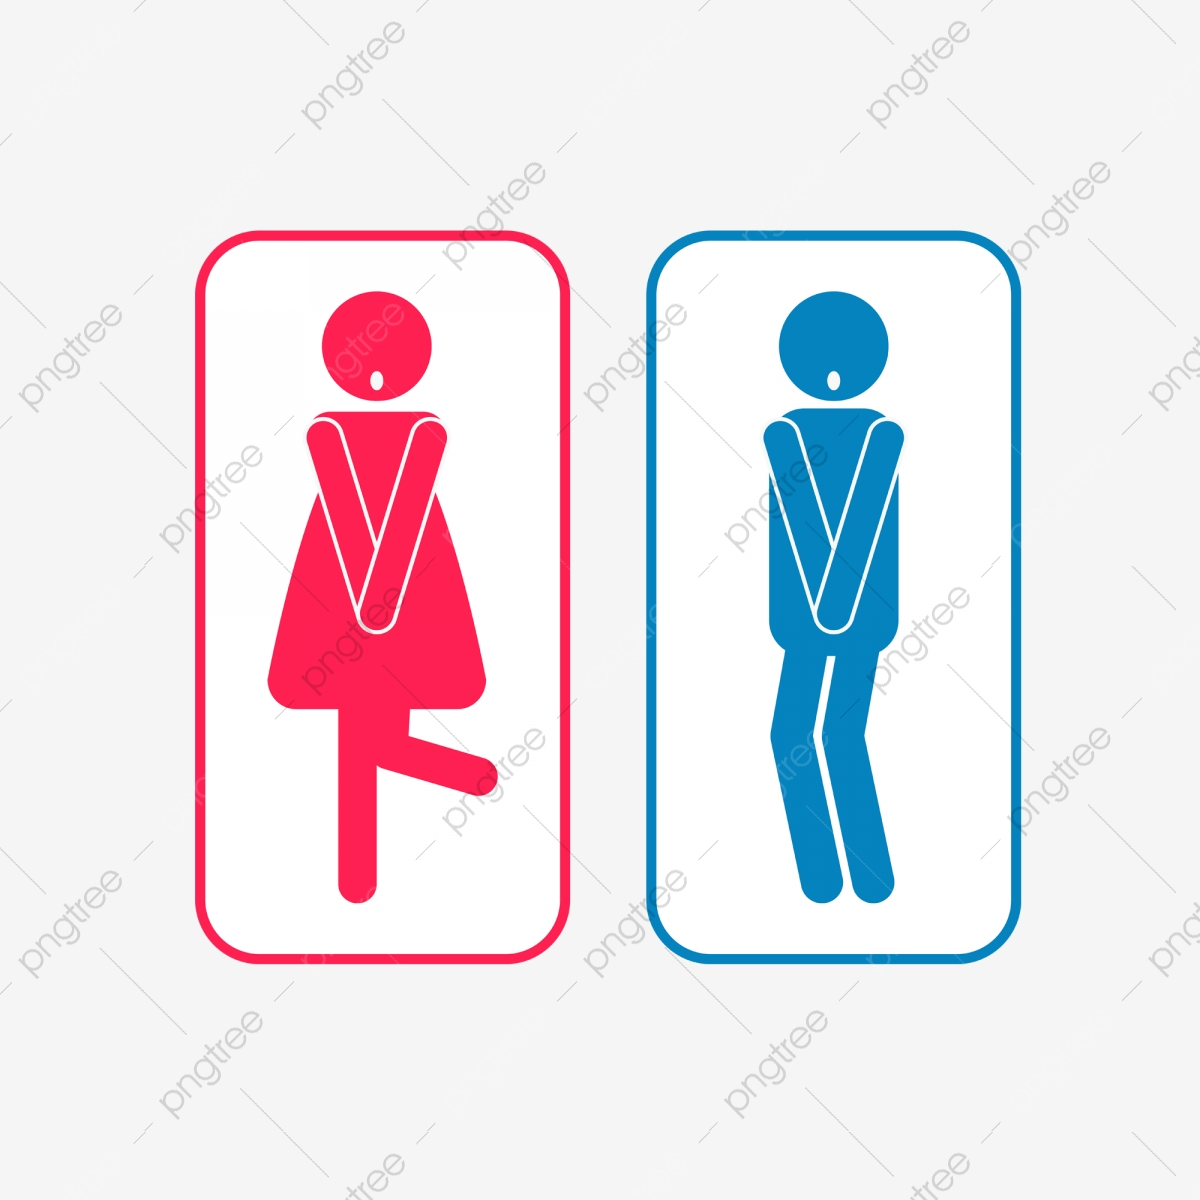 toilet sign picture toilet sign vector material toilet sign template download toilet sign toilet sign vi male female vi design advertising design vector cdr blue picture clipart toilet clipart png and vector https pngtree com freepng toilet sign picture 4396976 html